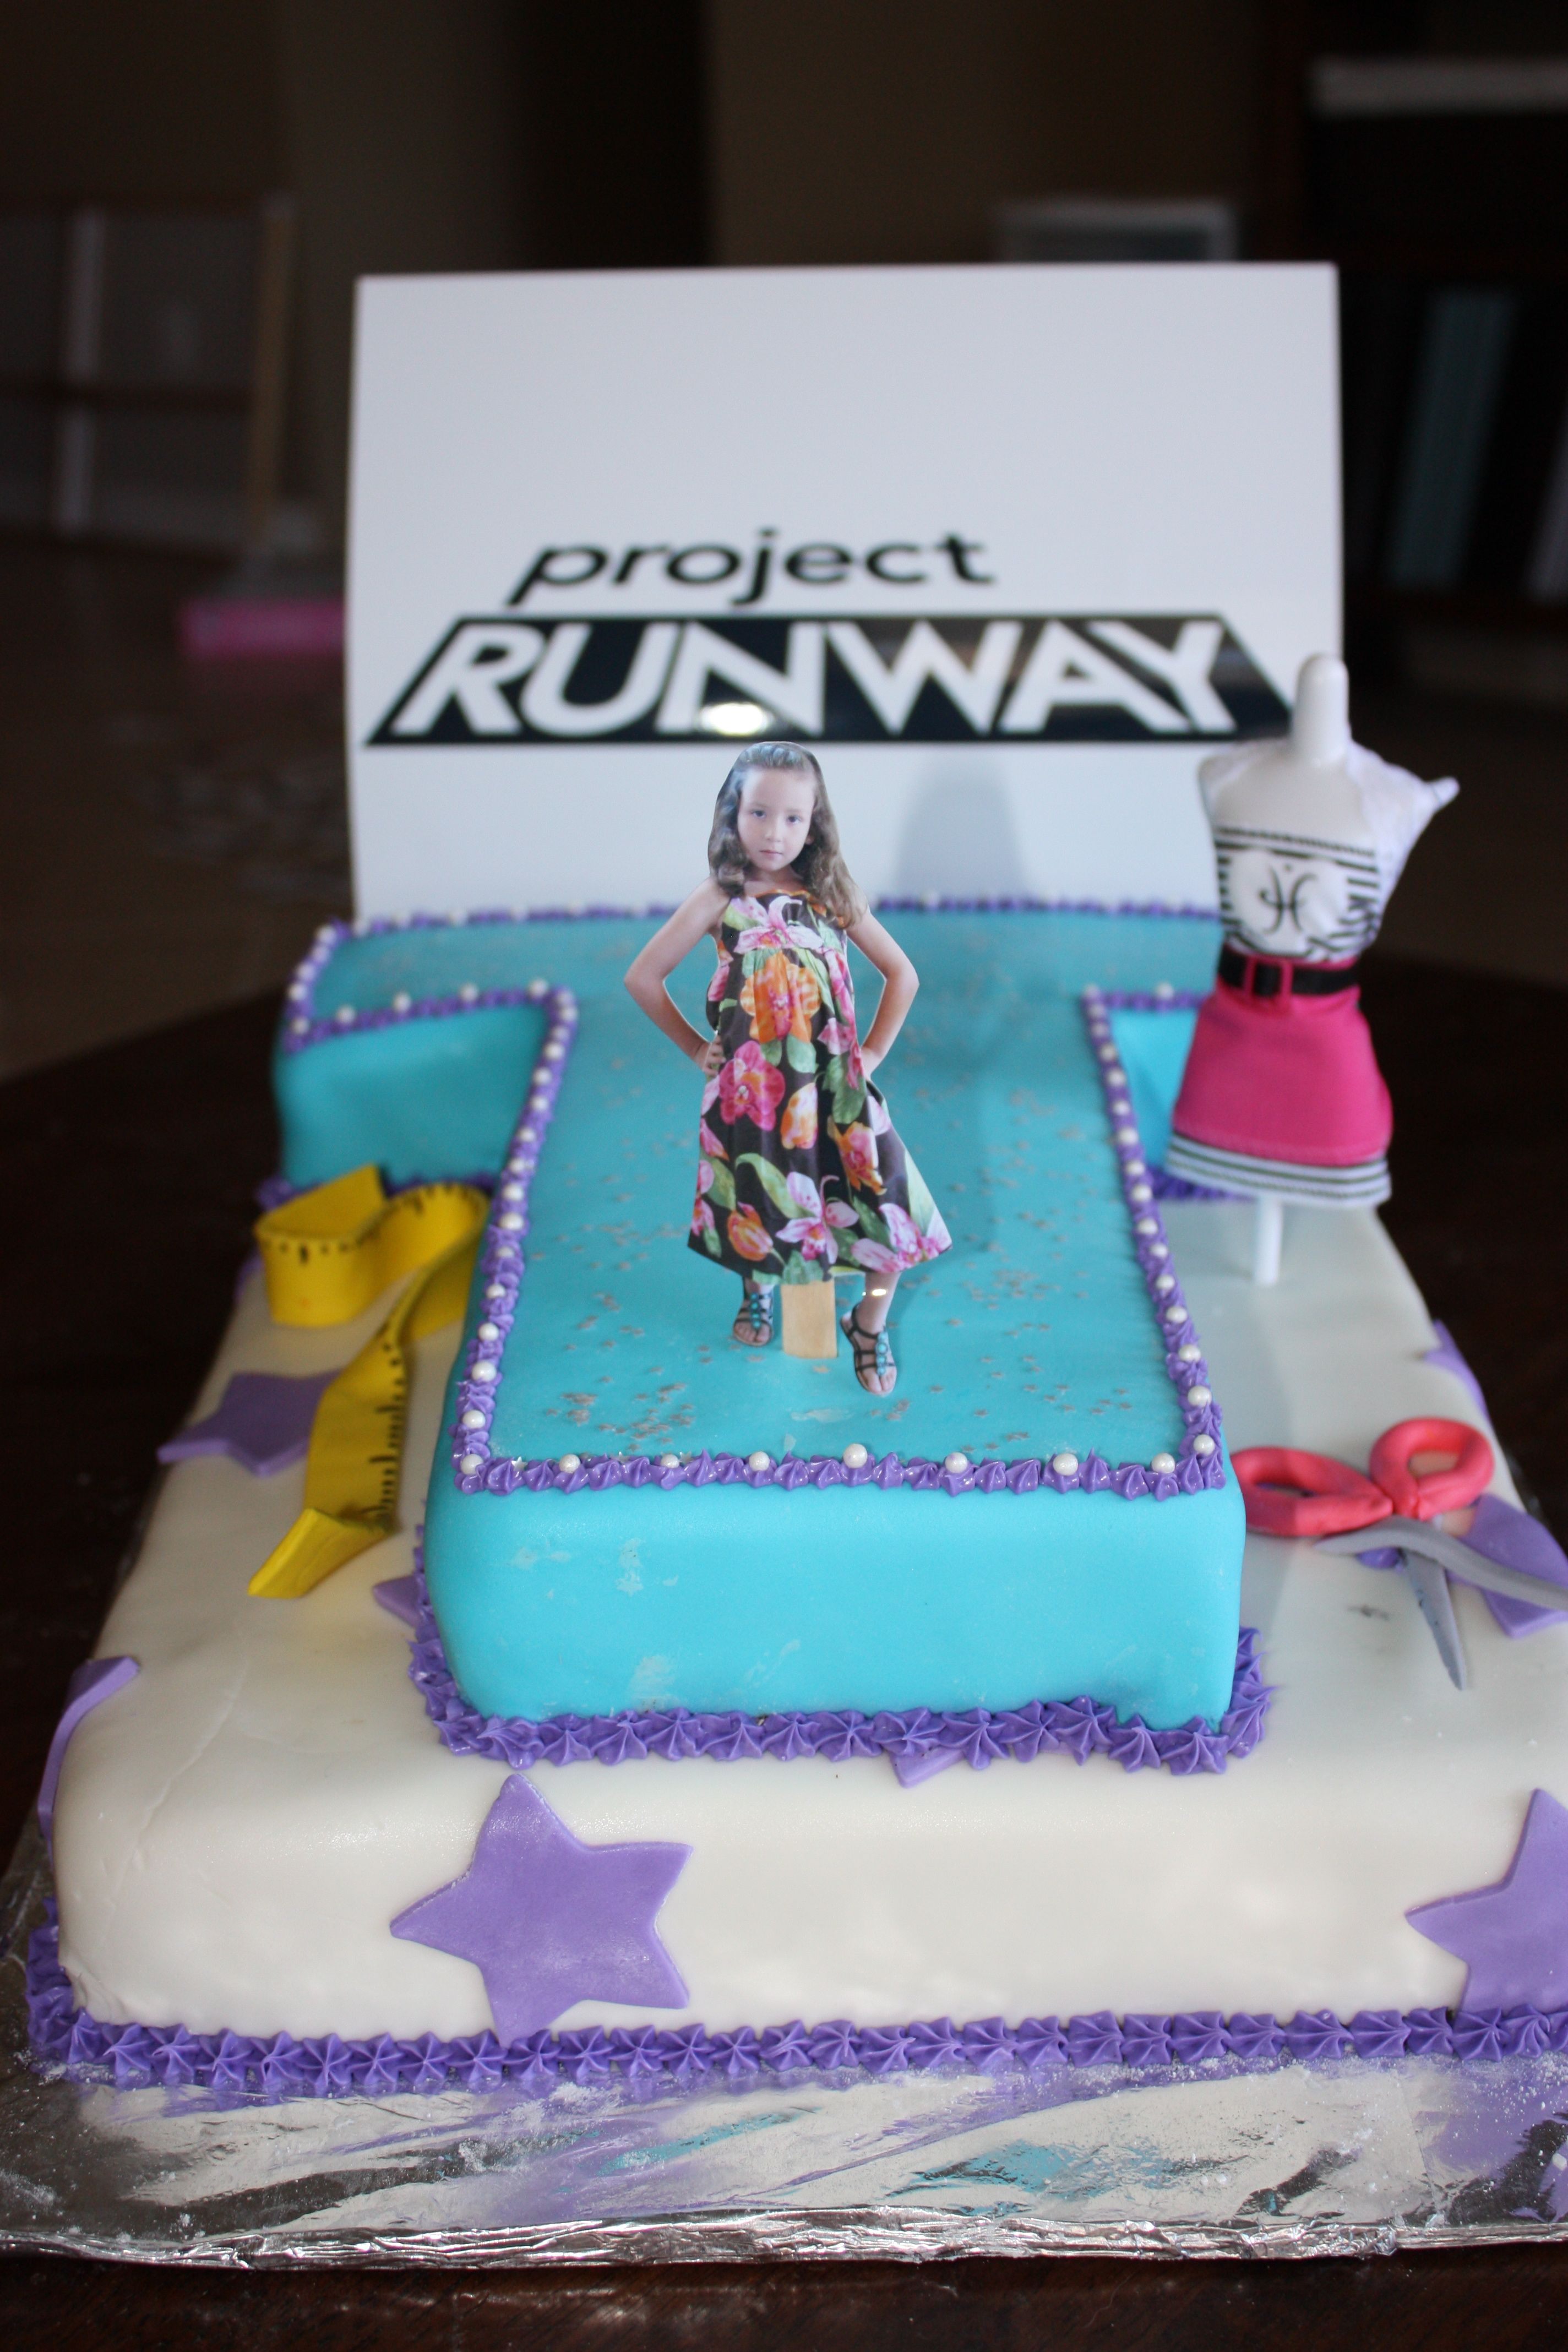 Project Runway Cake Cakes Pinterest Project Runway Cake And Birthdays